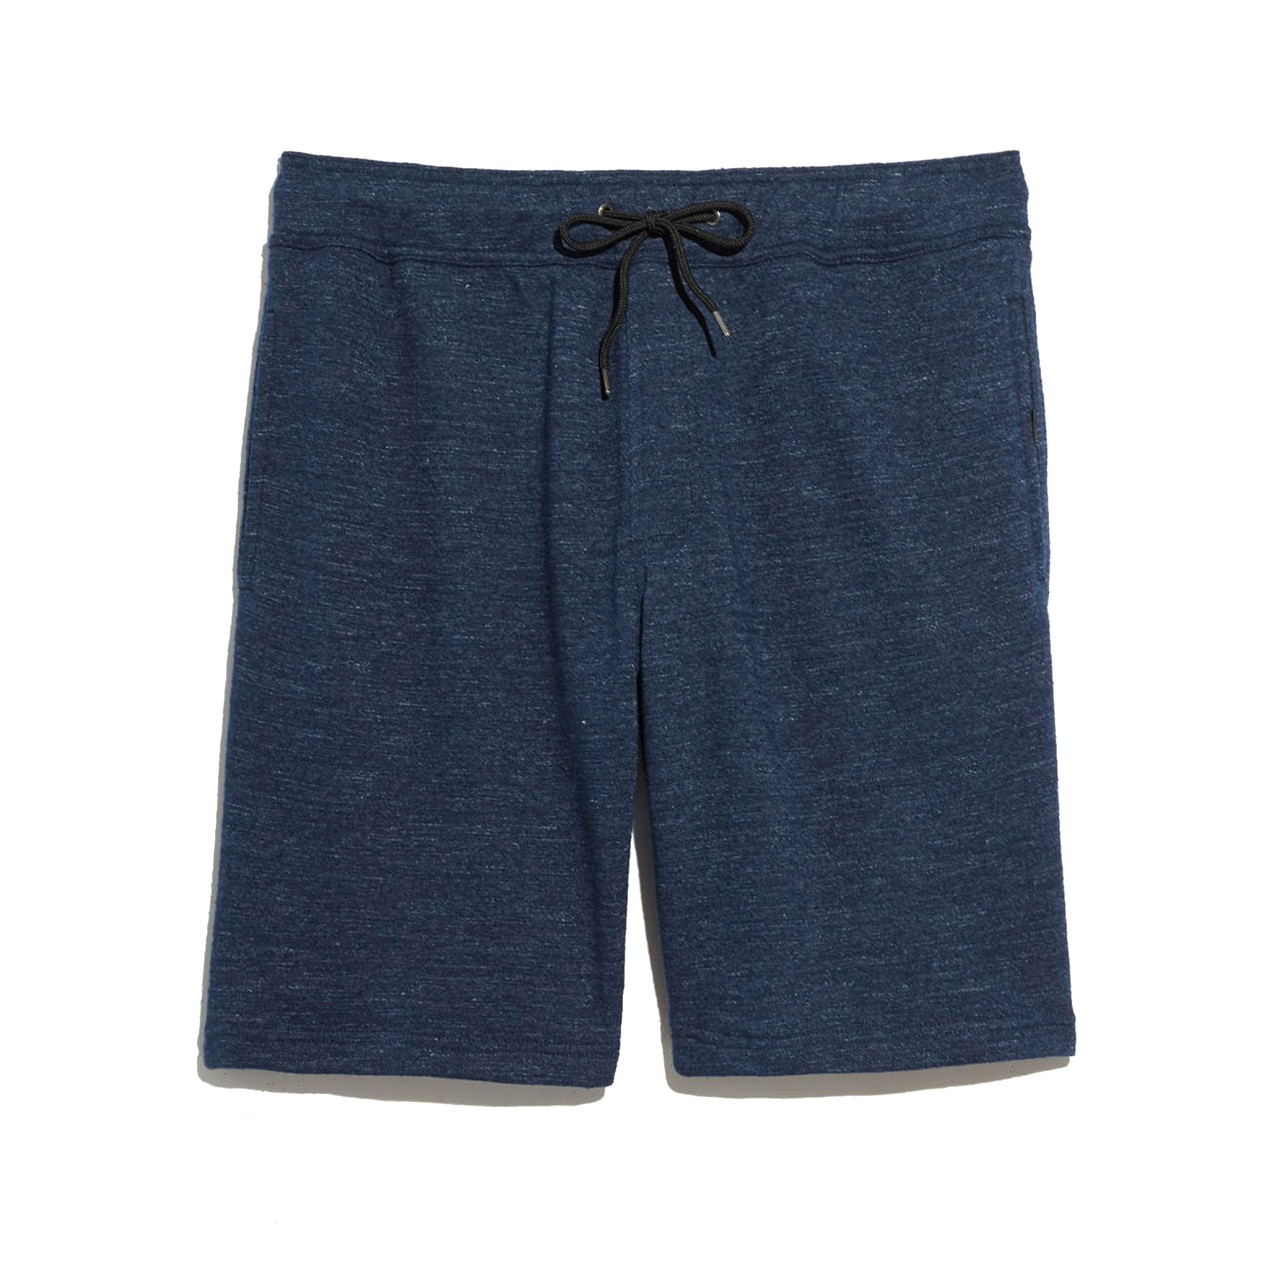 Onia Saul Terry Short in Deep Navy